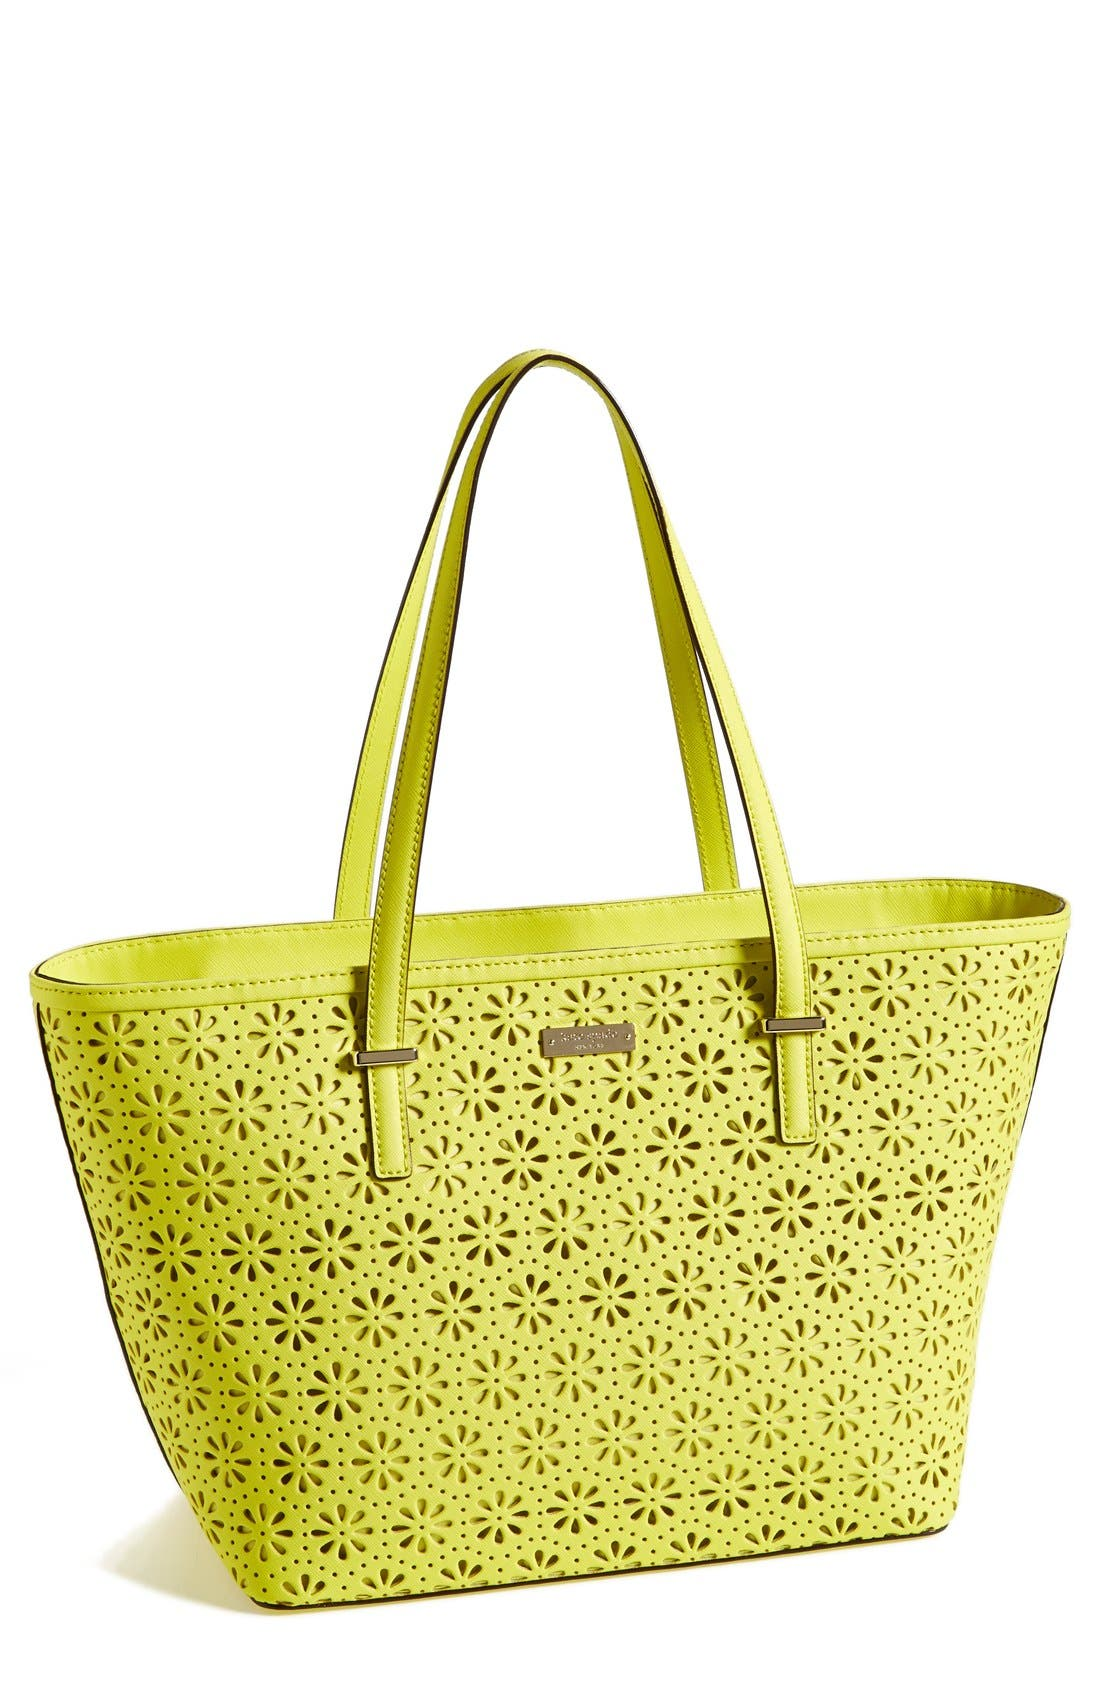 Main Image - kate spade new york 'small cedar street - harmony' perforated leather tote